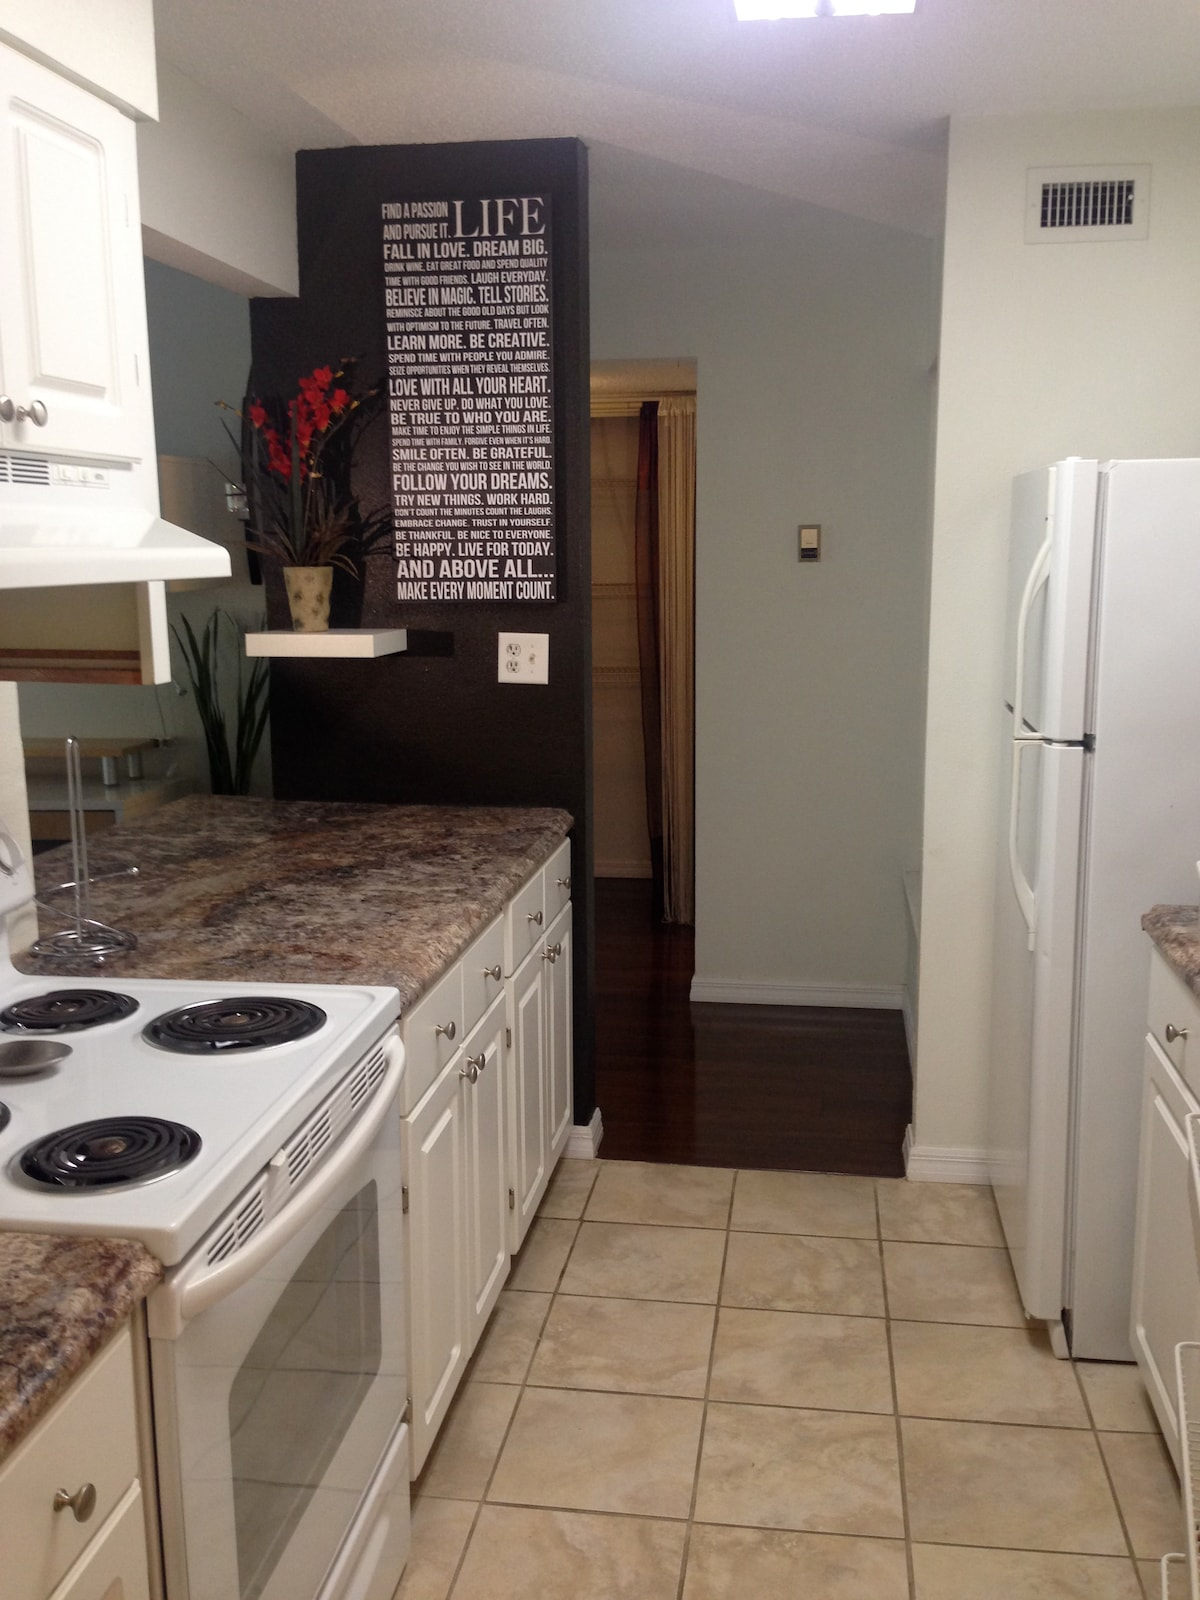 Kitchen includes dishwasher, stove, refrigerator, all pots/pans, dishes. Pantry has washer/dryer.